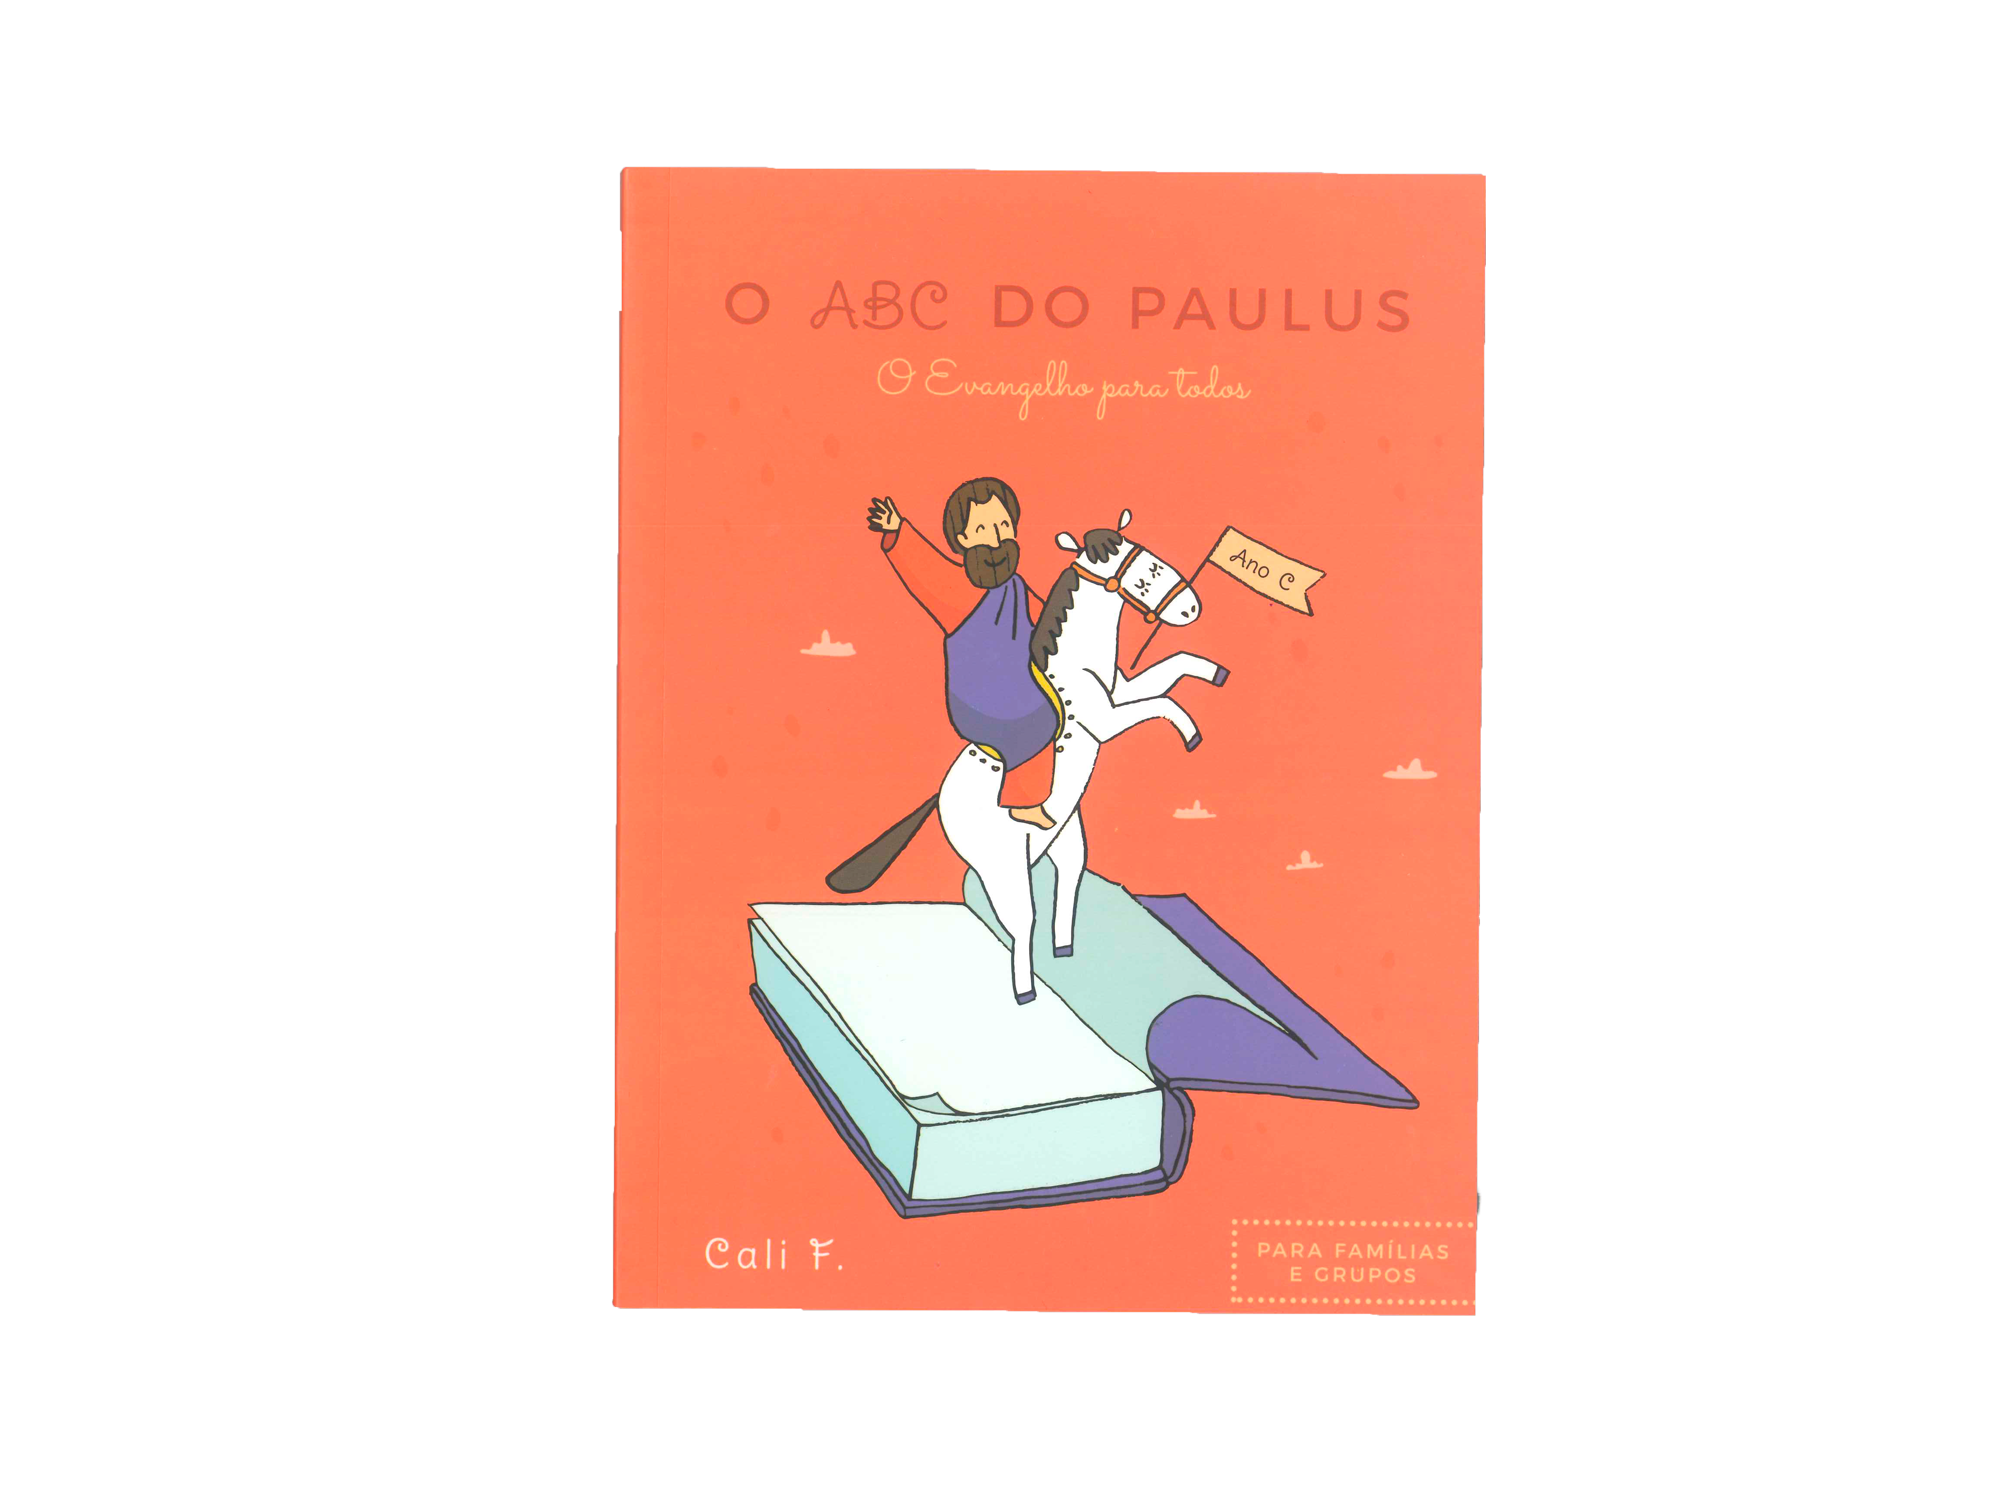 O ABC do Paulus